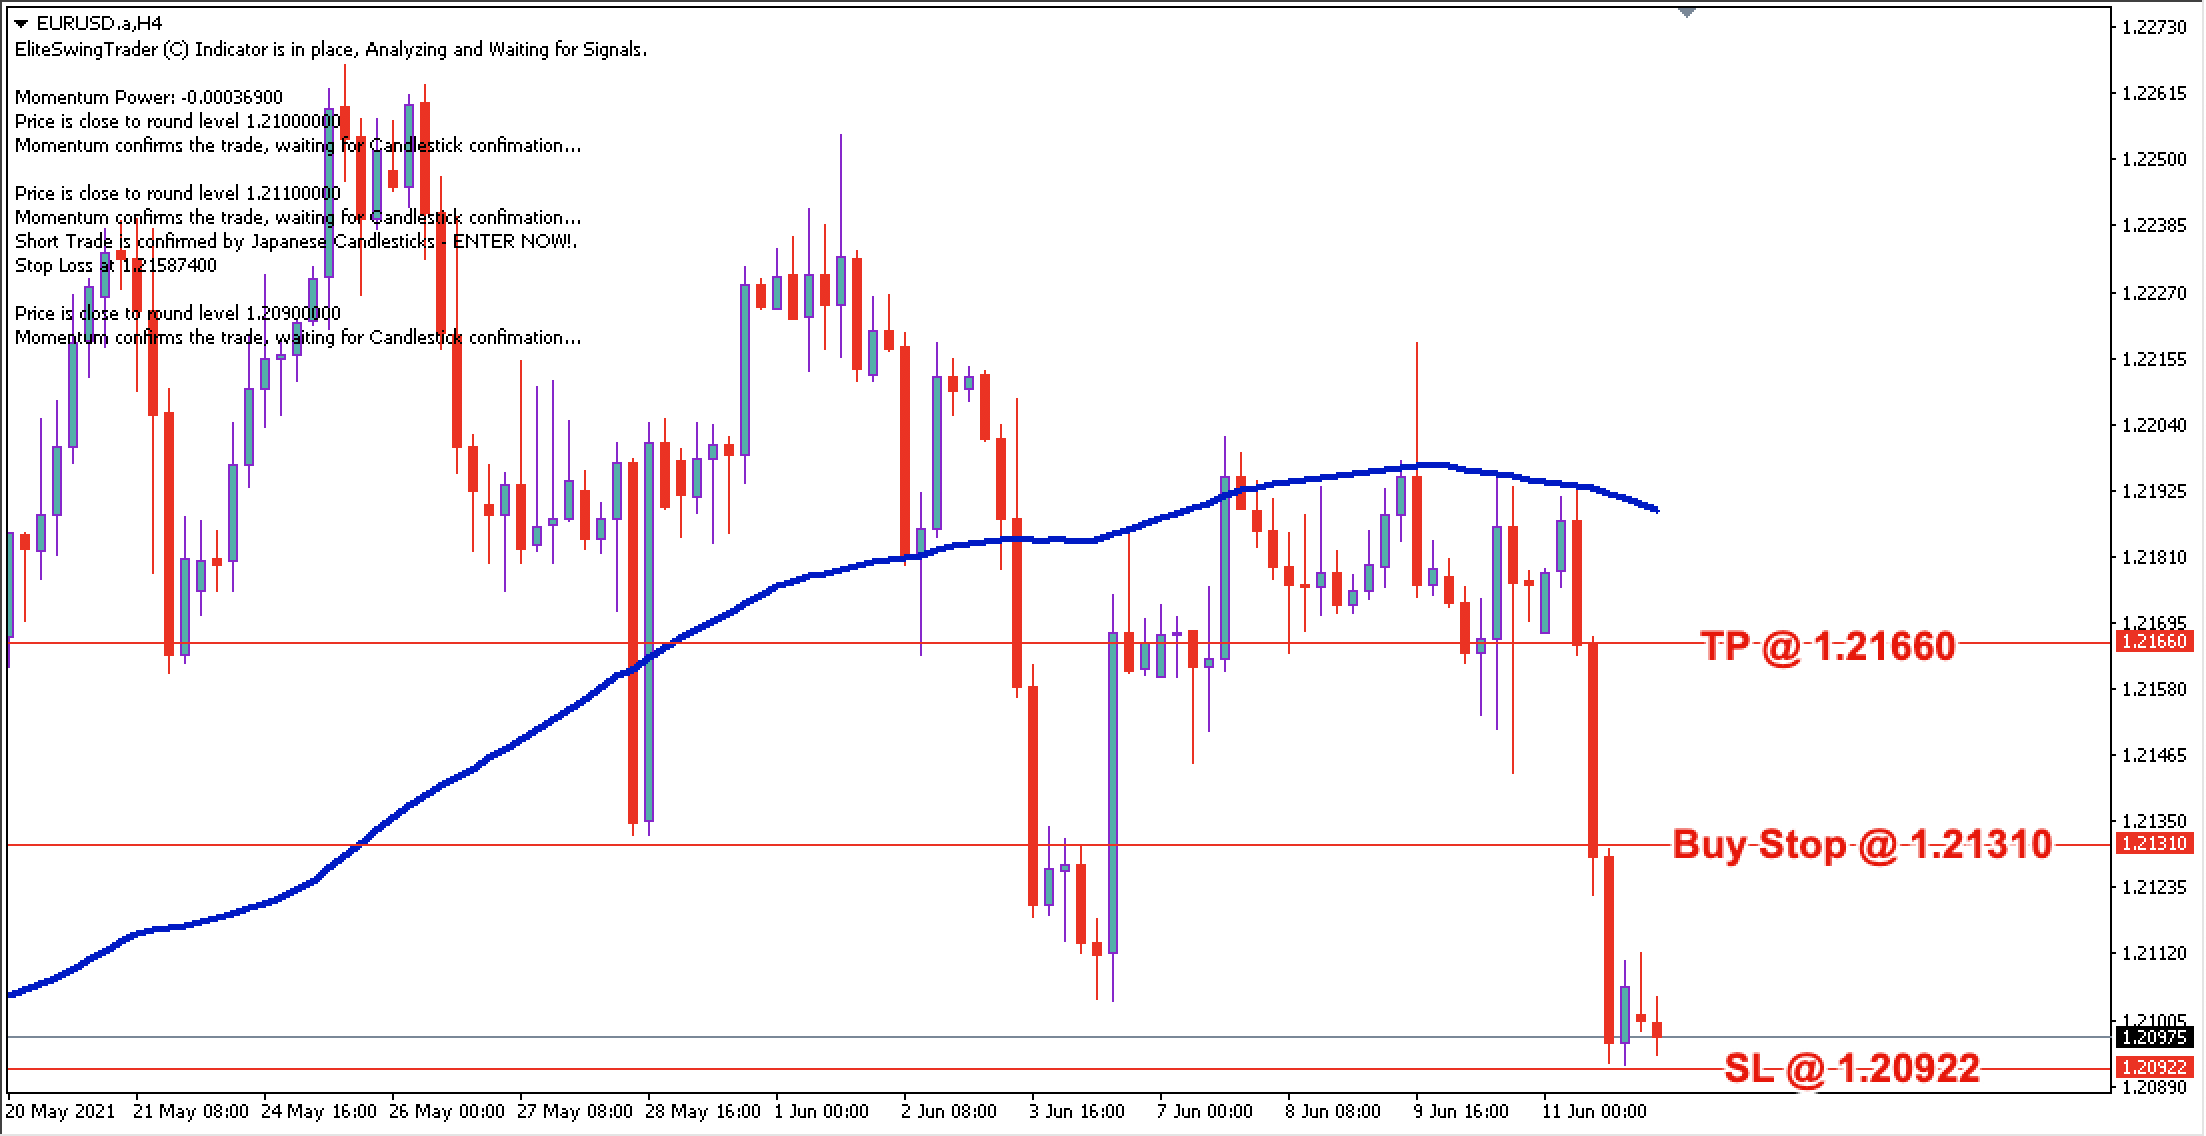 EUR/USD Daily Price Forecast – 14th June 2021